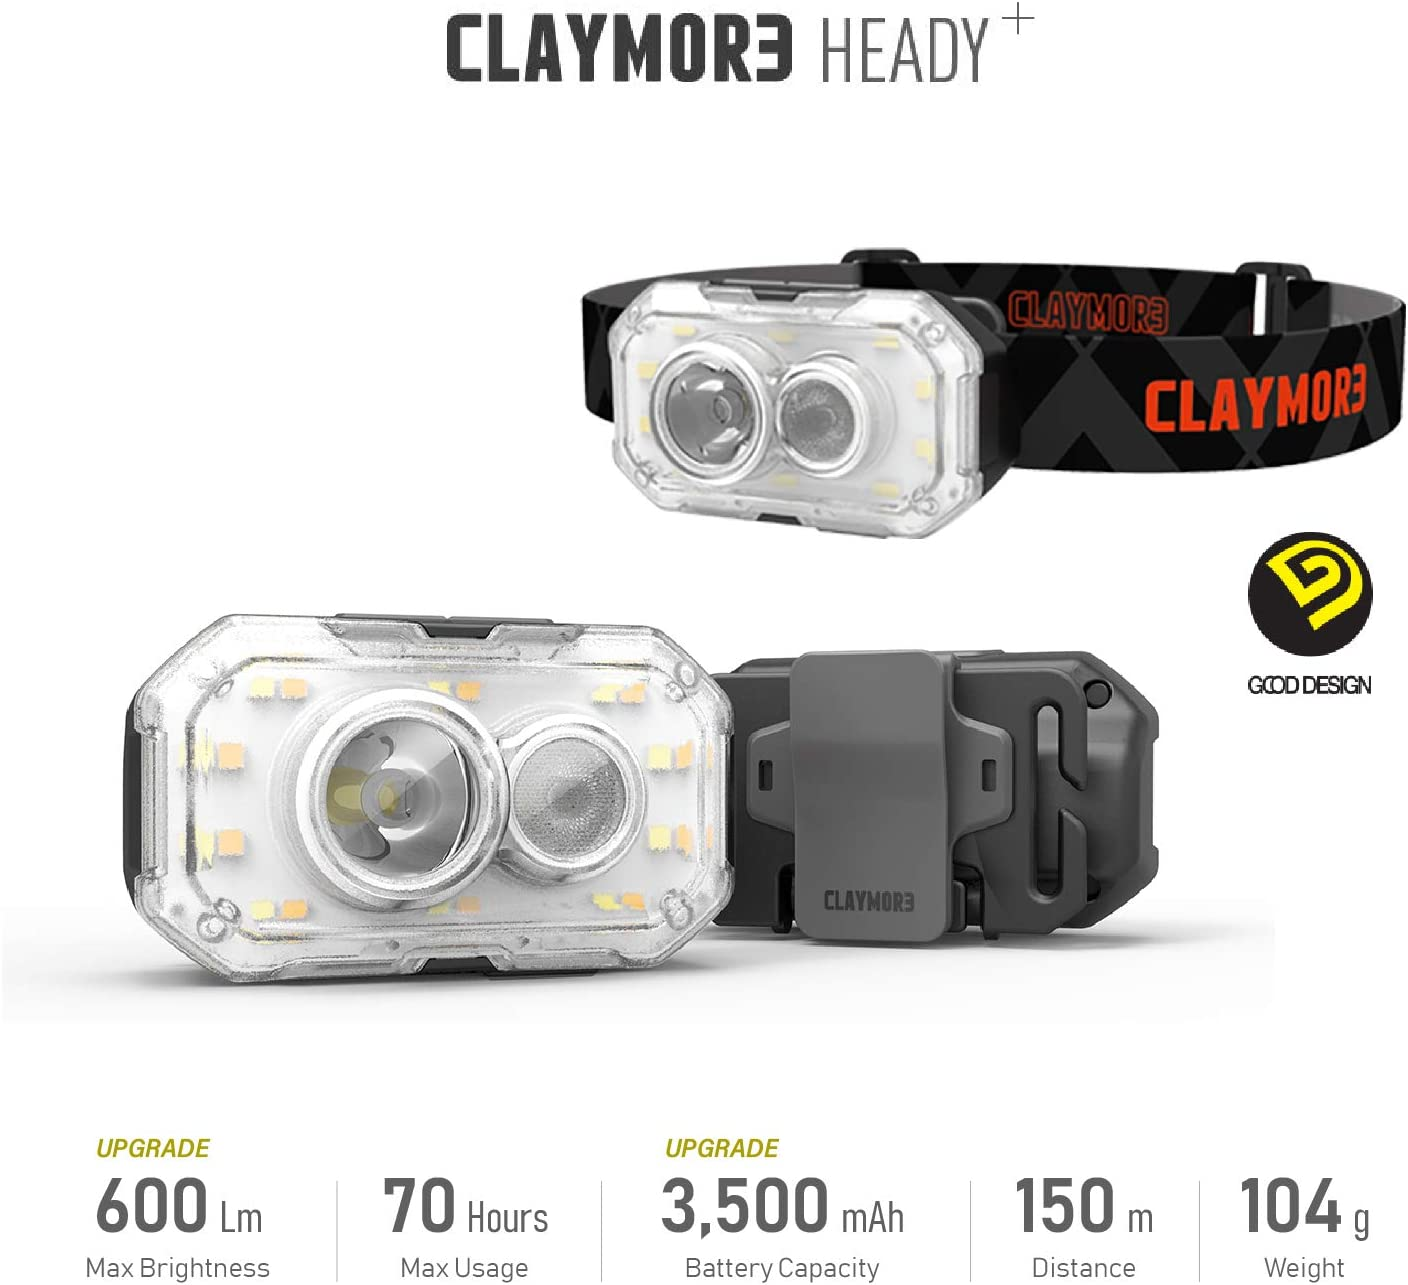 Red 3,5000mAh 3 Colors 4 Lighting Modes 600 Lumens USB Rechargeable Claymore Heady+ Headlamp and Lantern Portable LED Flashlight for Camping Running Hiking and More